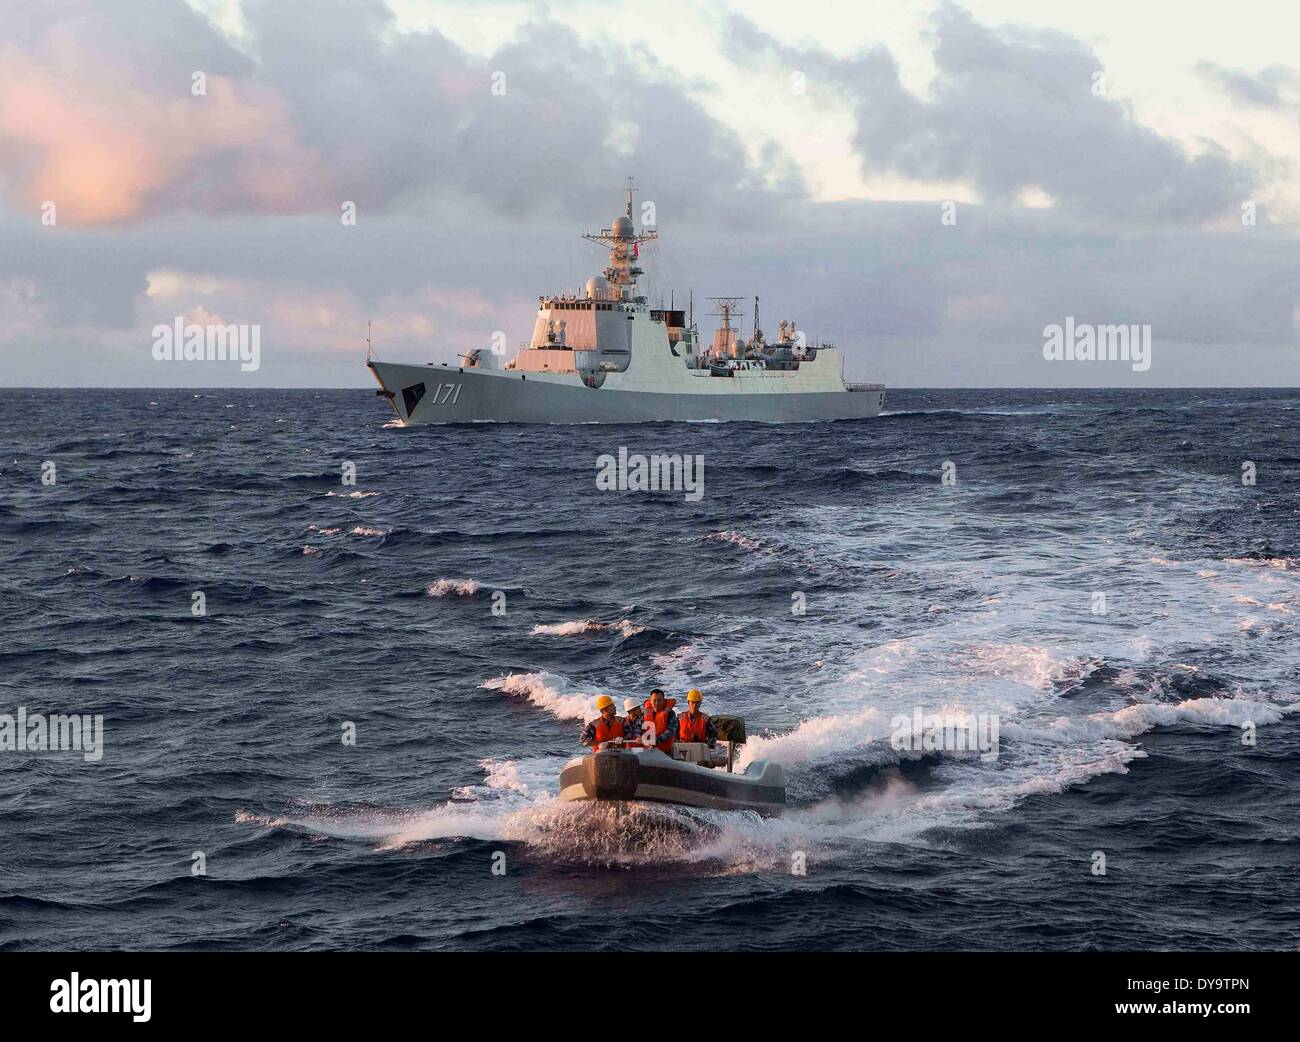 Canberra. 9th Apr, 2014. Picture released by Australian Defense Force (ADF) and taken on April 9, 2014 shows Chinese Navy soliders driving a boat to the Royal Australian Navy ship HMAS Success during the search for the missing Malaysia Airlines Flight MH370. Australian Prime Minister Tony Abbott said on April 11 that he is confident the signals captured over the past days were from the black box of the missing Malaysian flight. Credit:  ADF/Xinhua/Alamy Live News - Stock Image